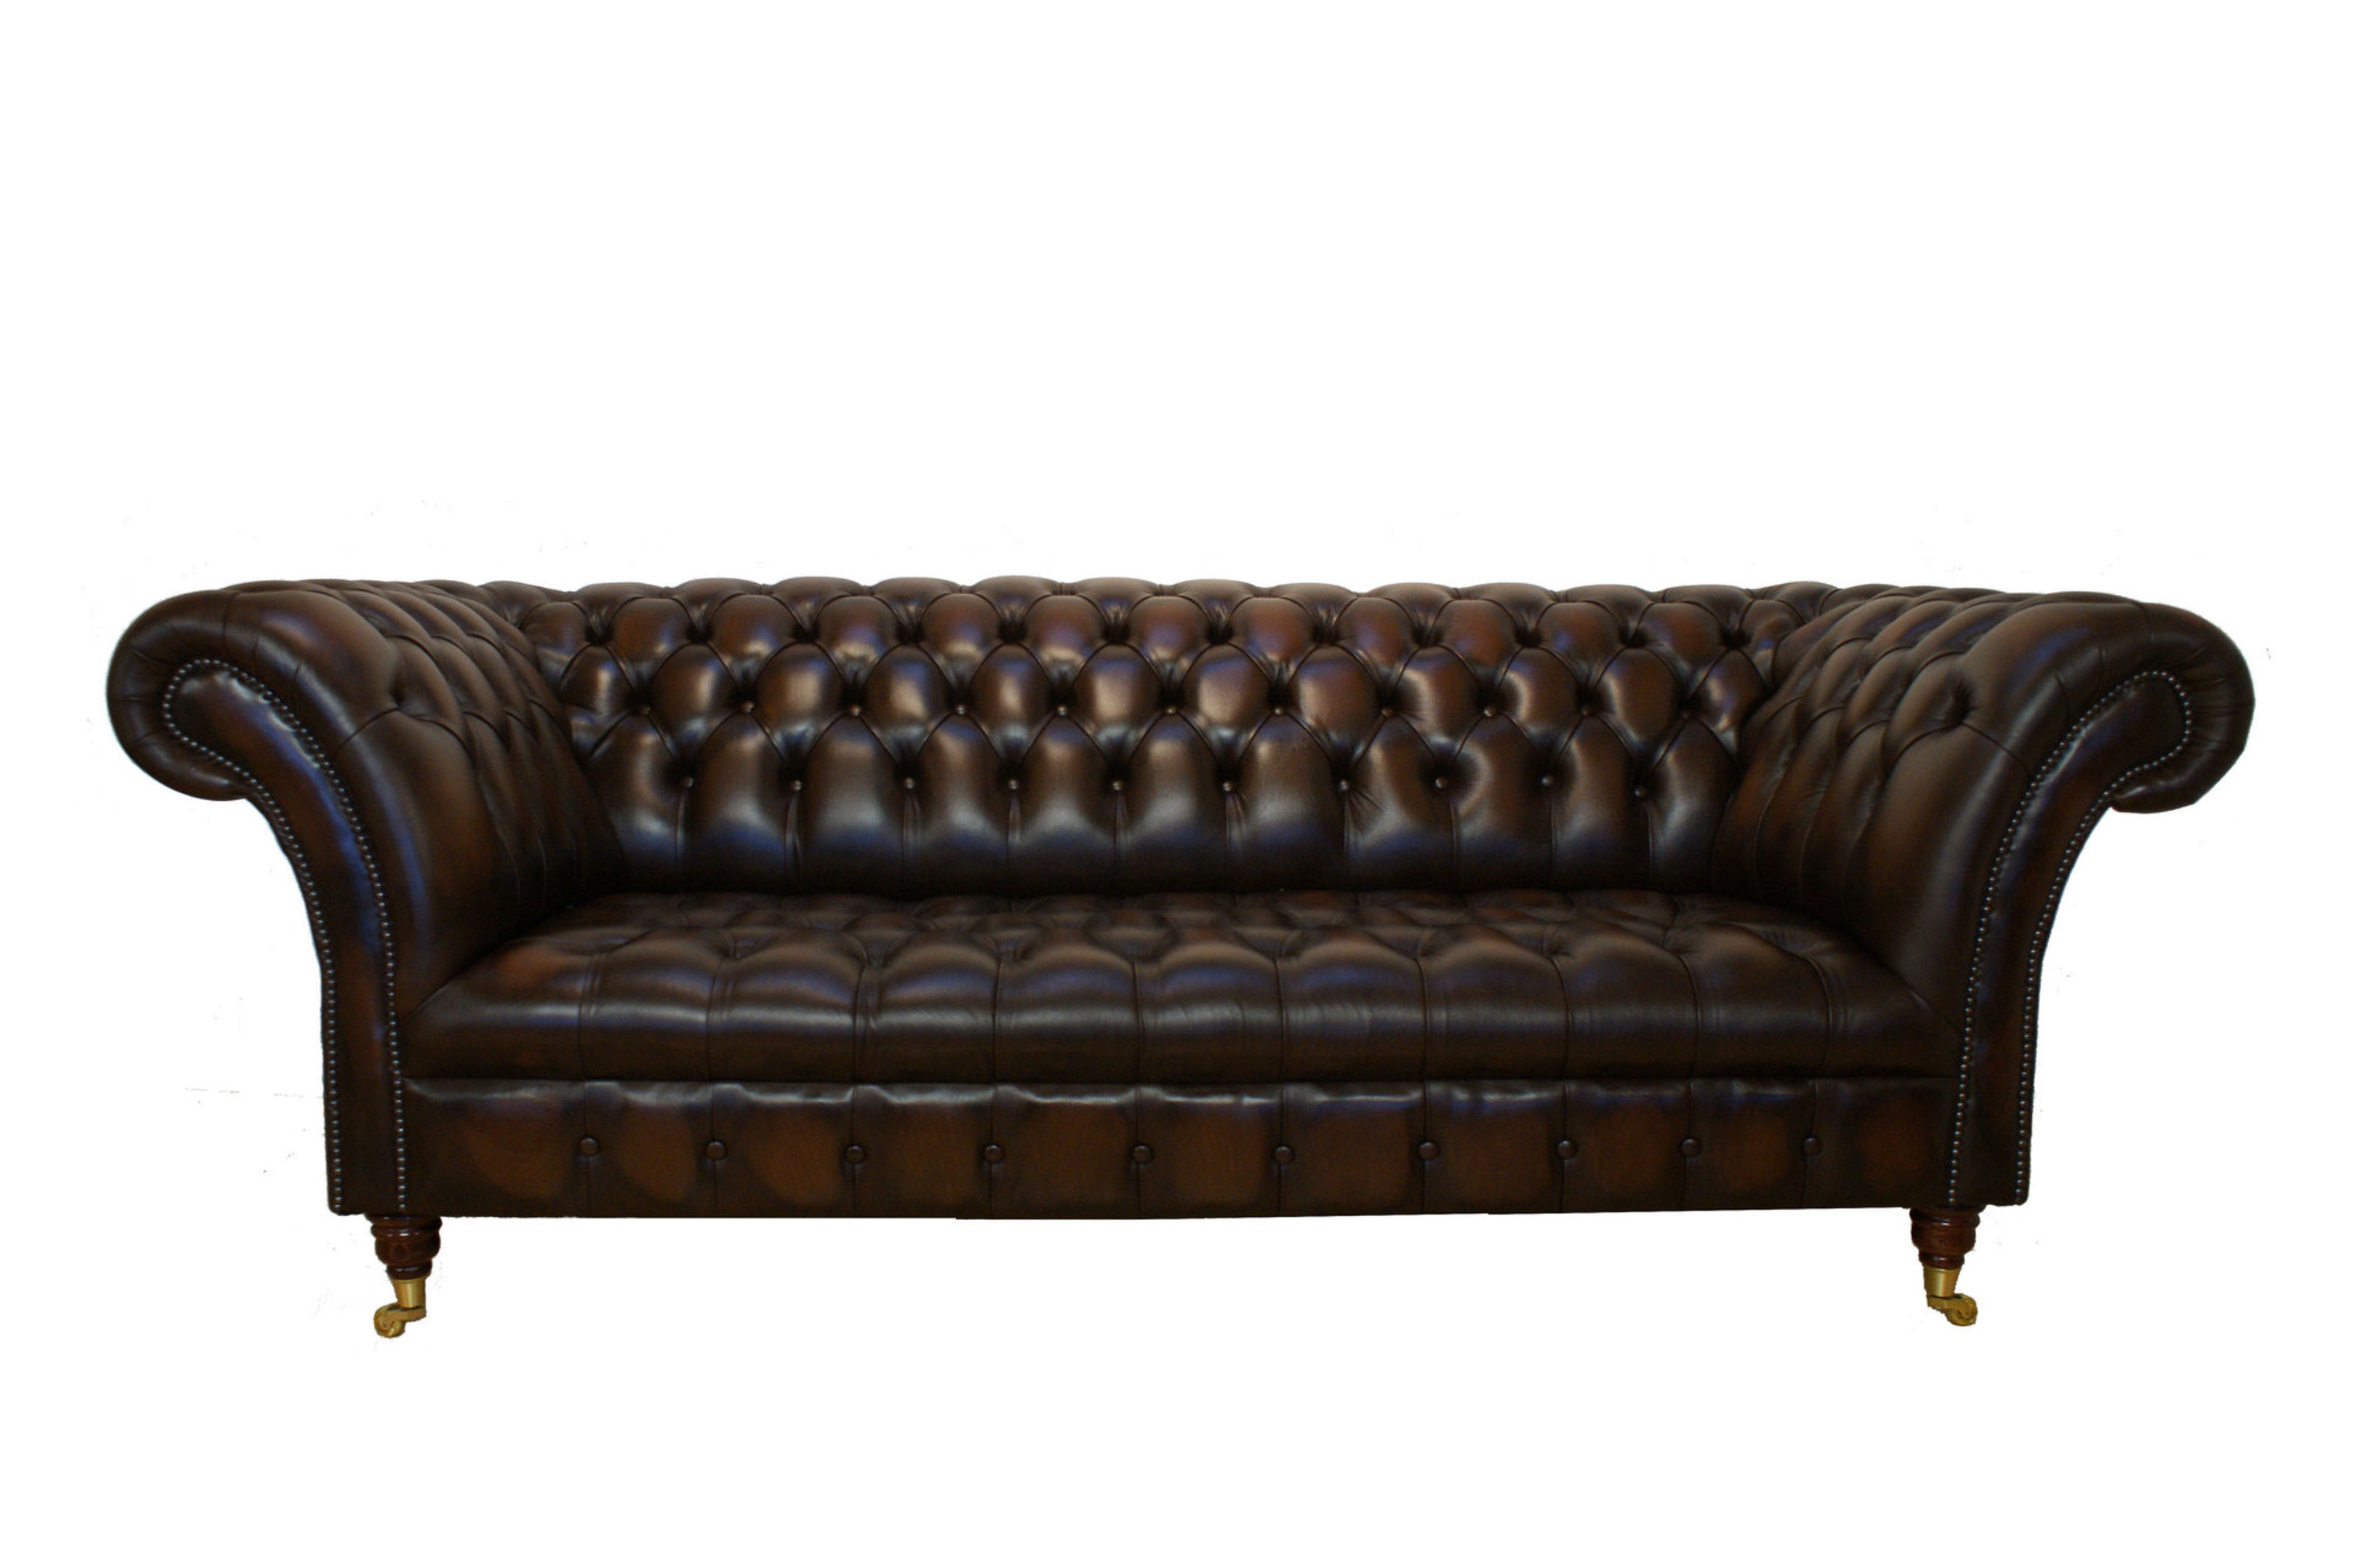 Chesterfield Sofas In London Chesterfield Leather Sofa